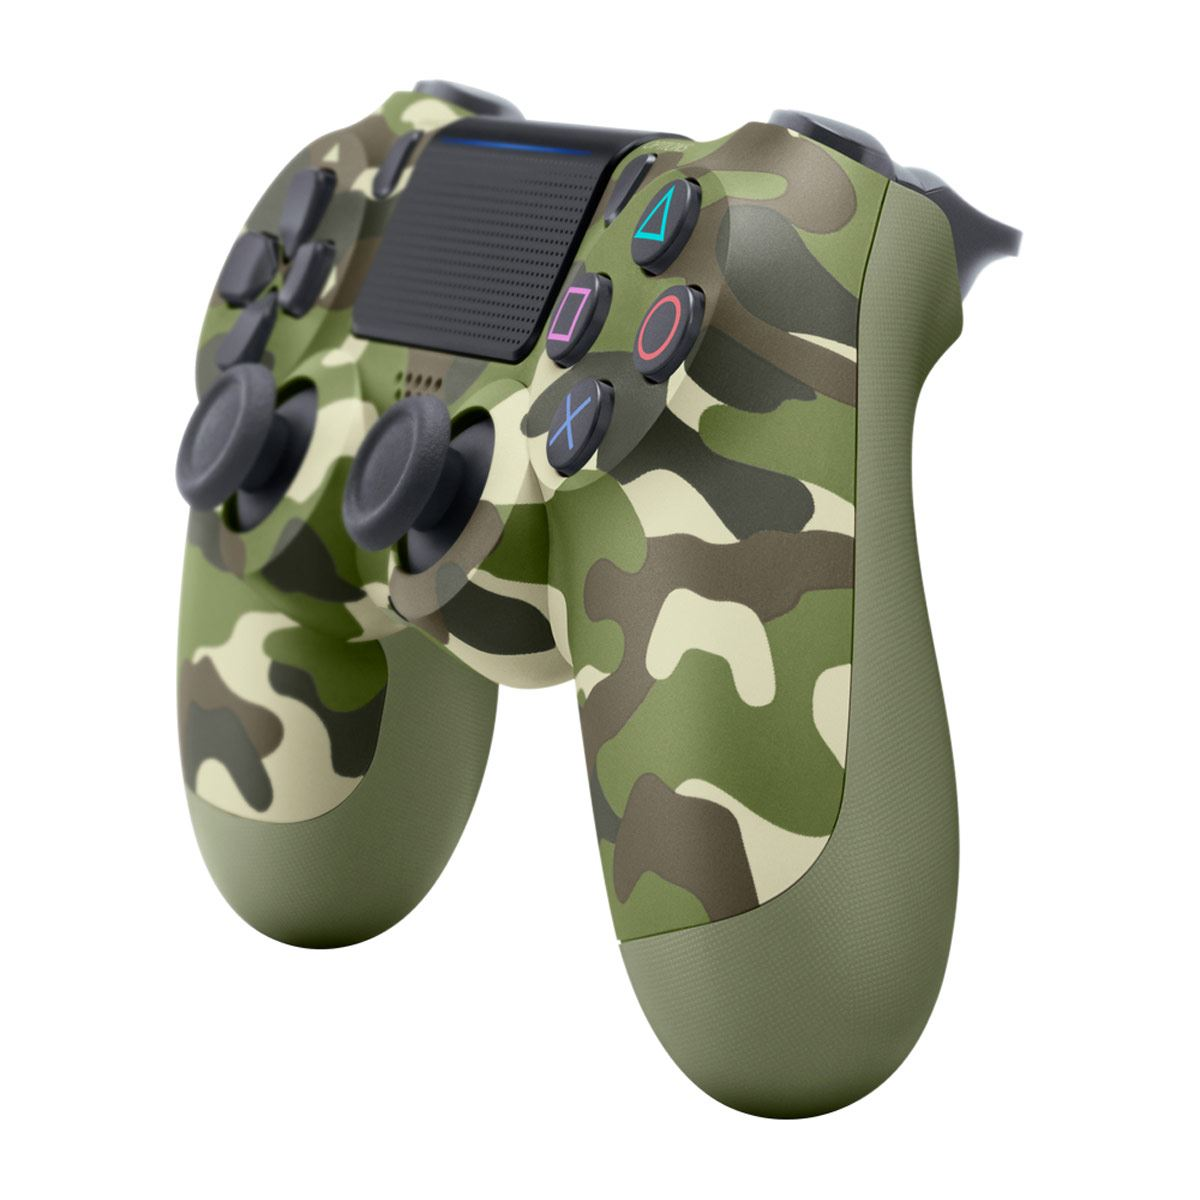 Control DS4 PS4 Green